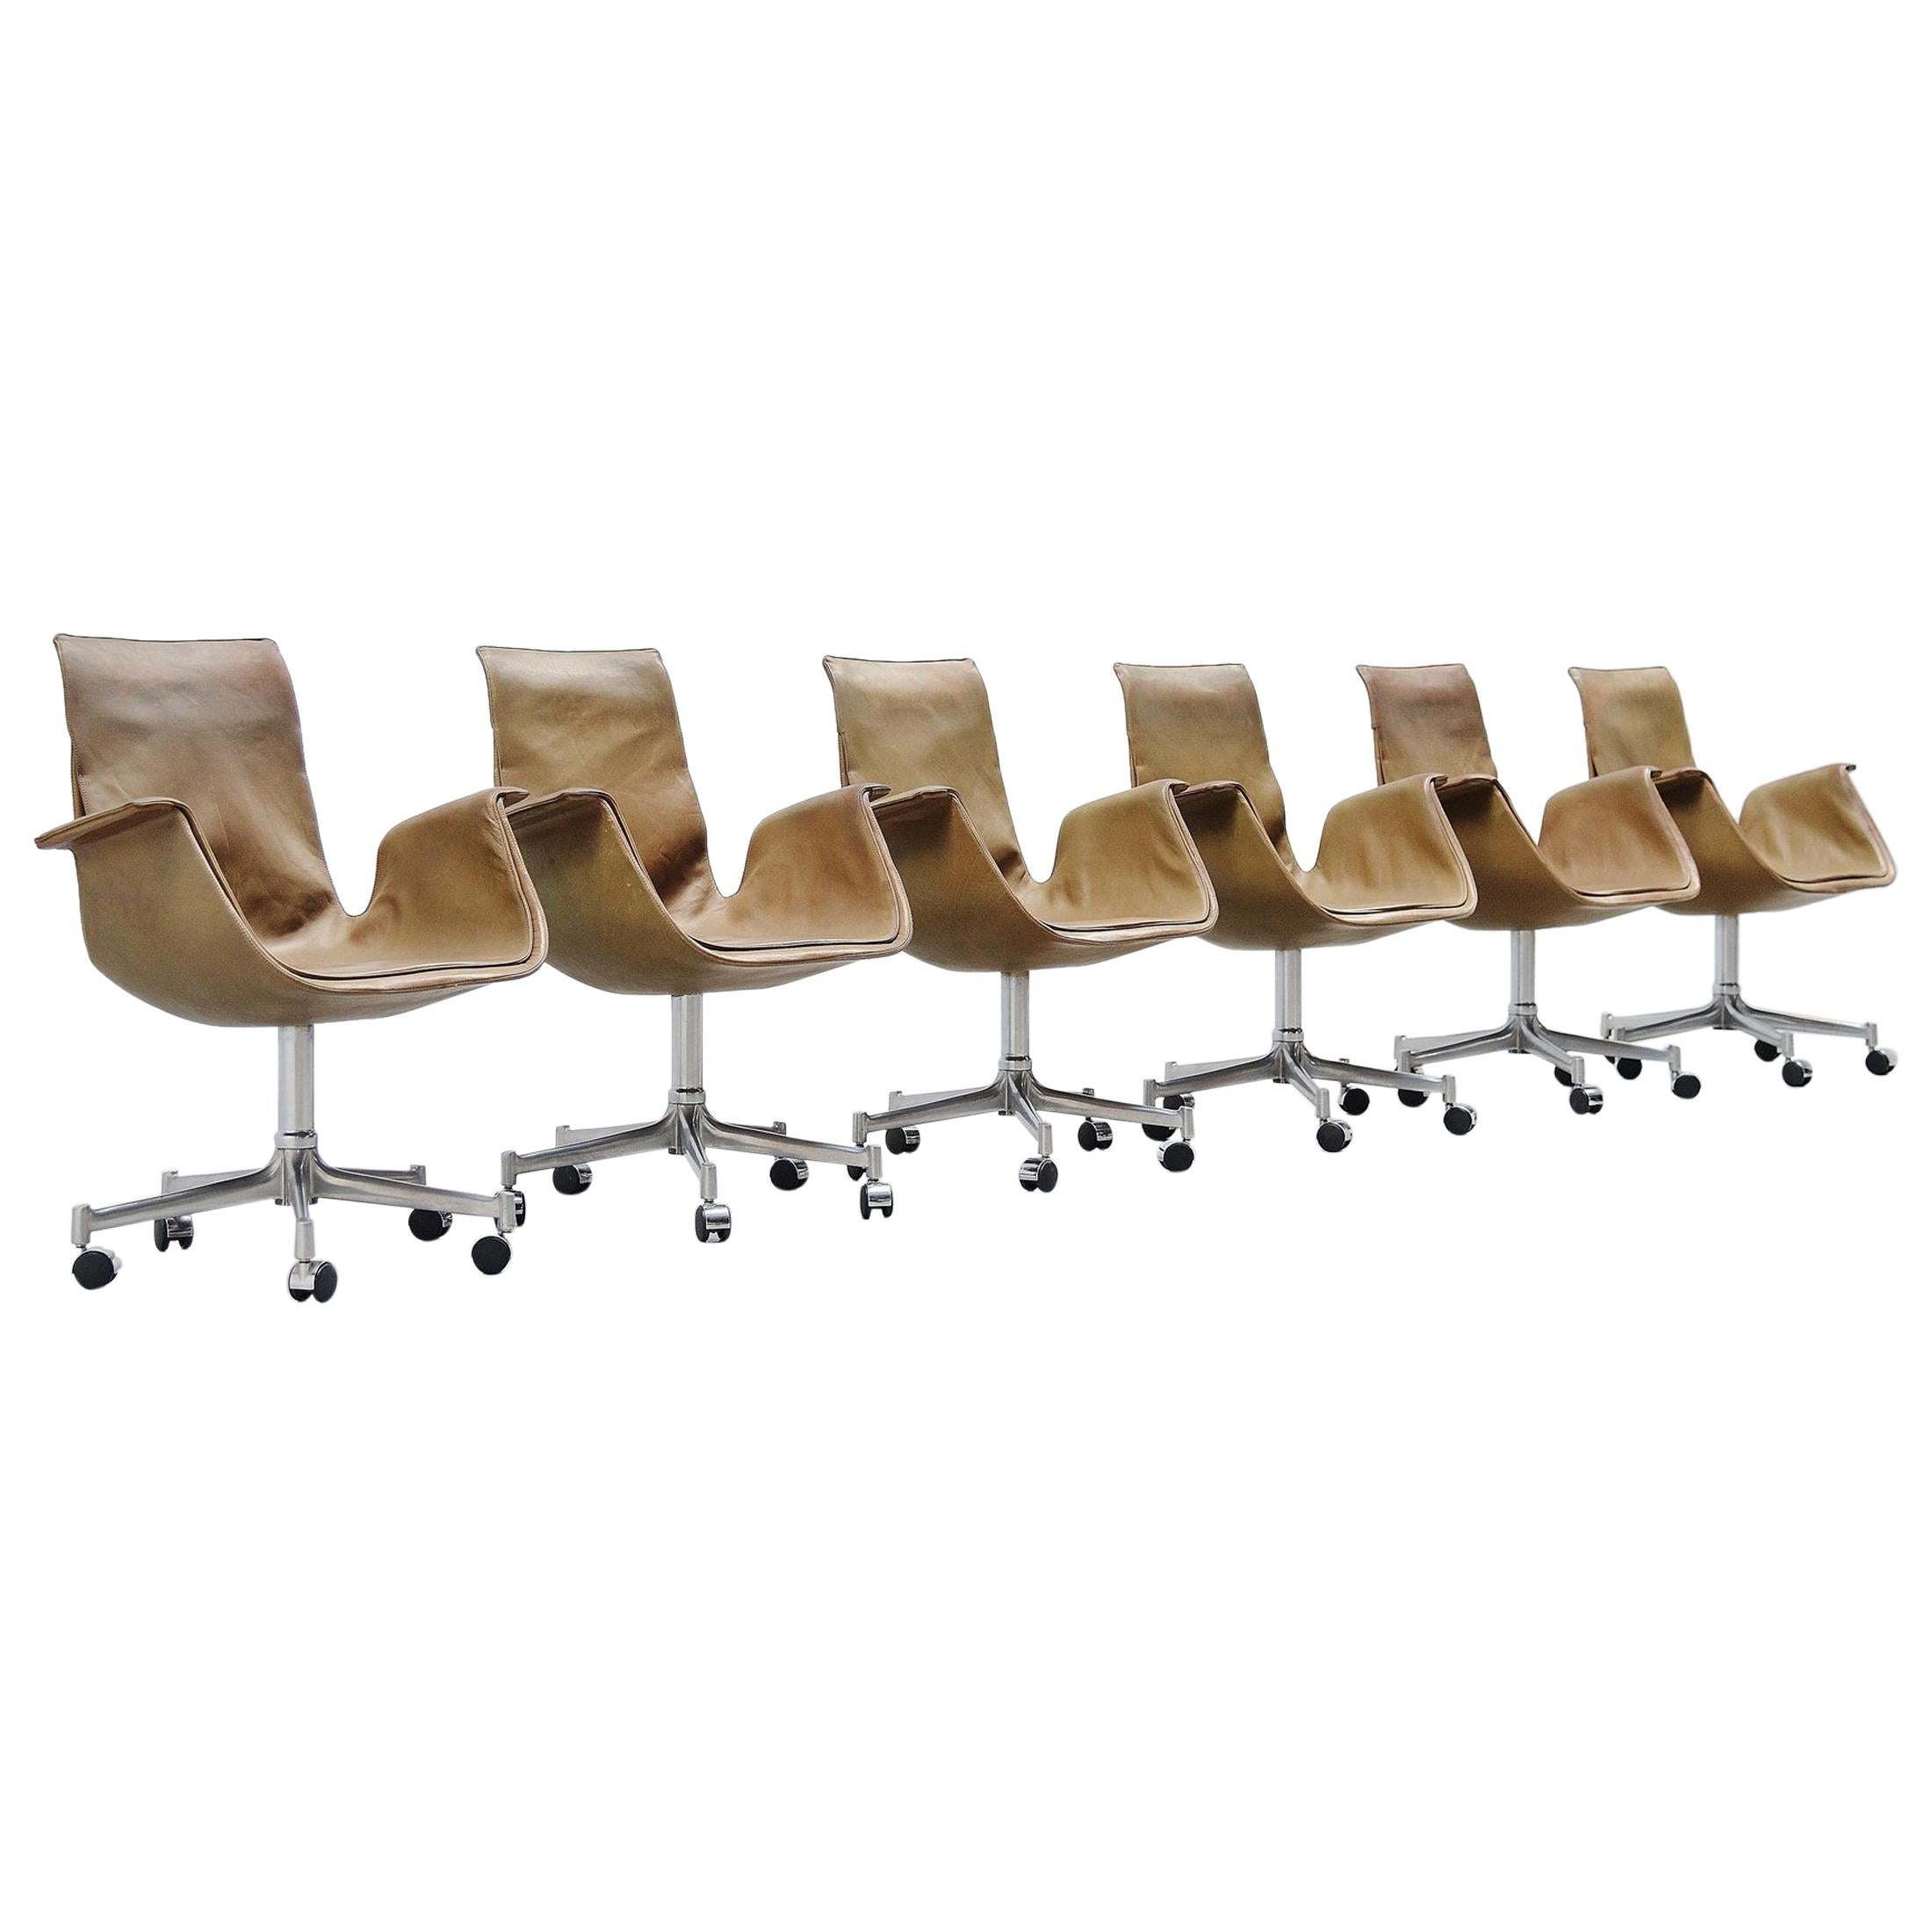 Preben Fabricius Jorgen Kastholm FK6727 Bird Office Chairs, 1964